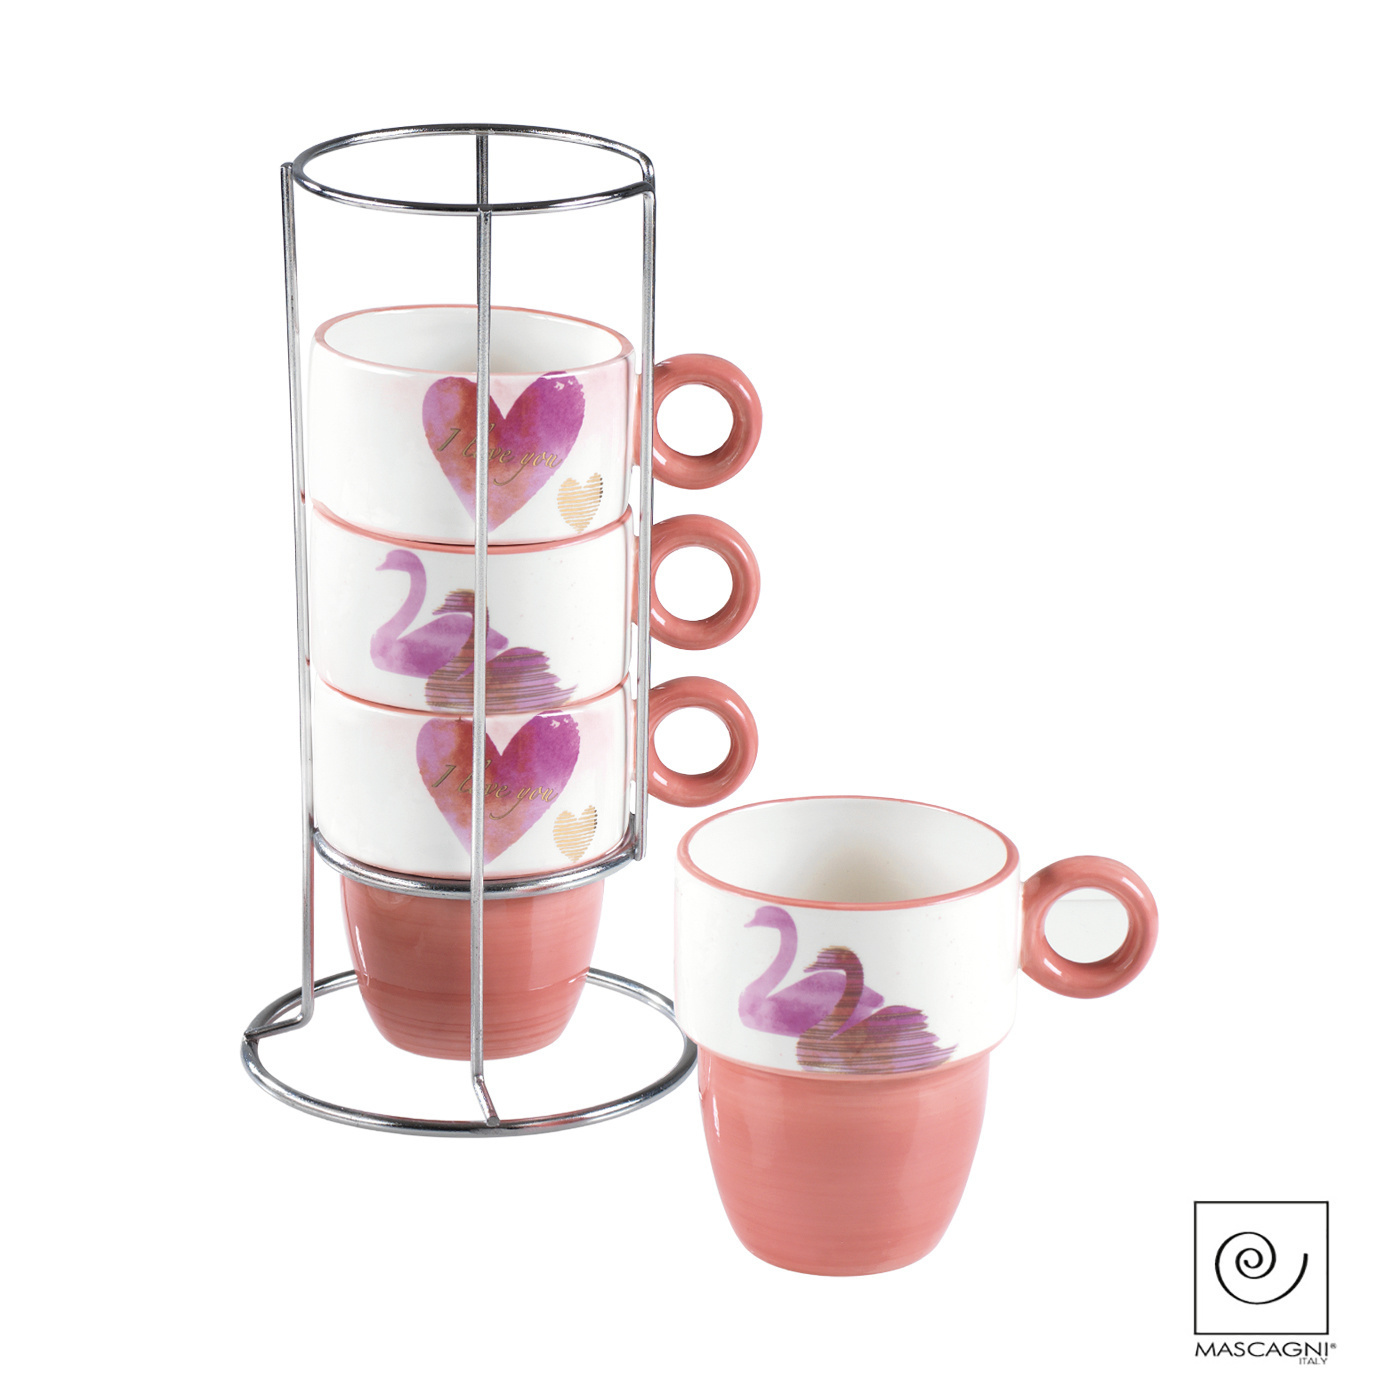 Art Mascagni A1020 SET 4 MUGS